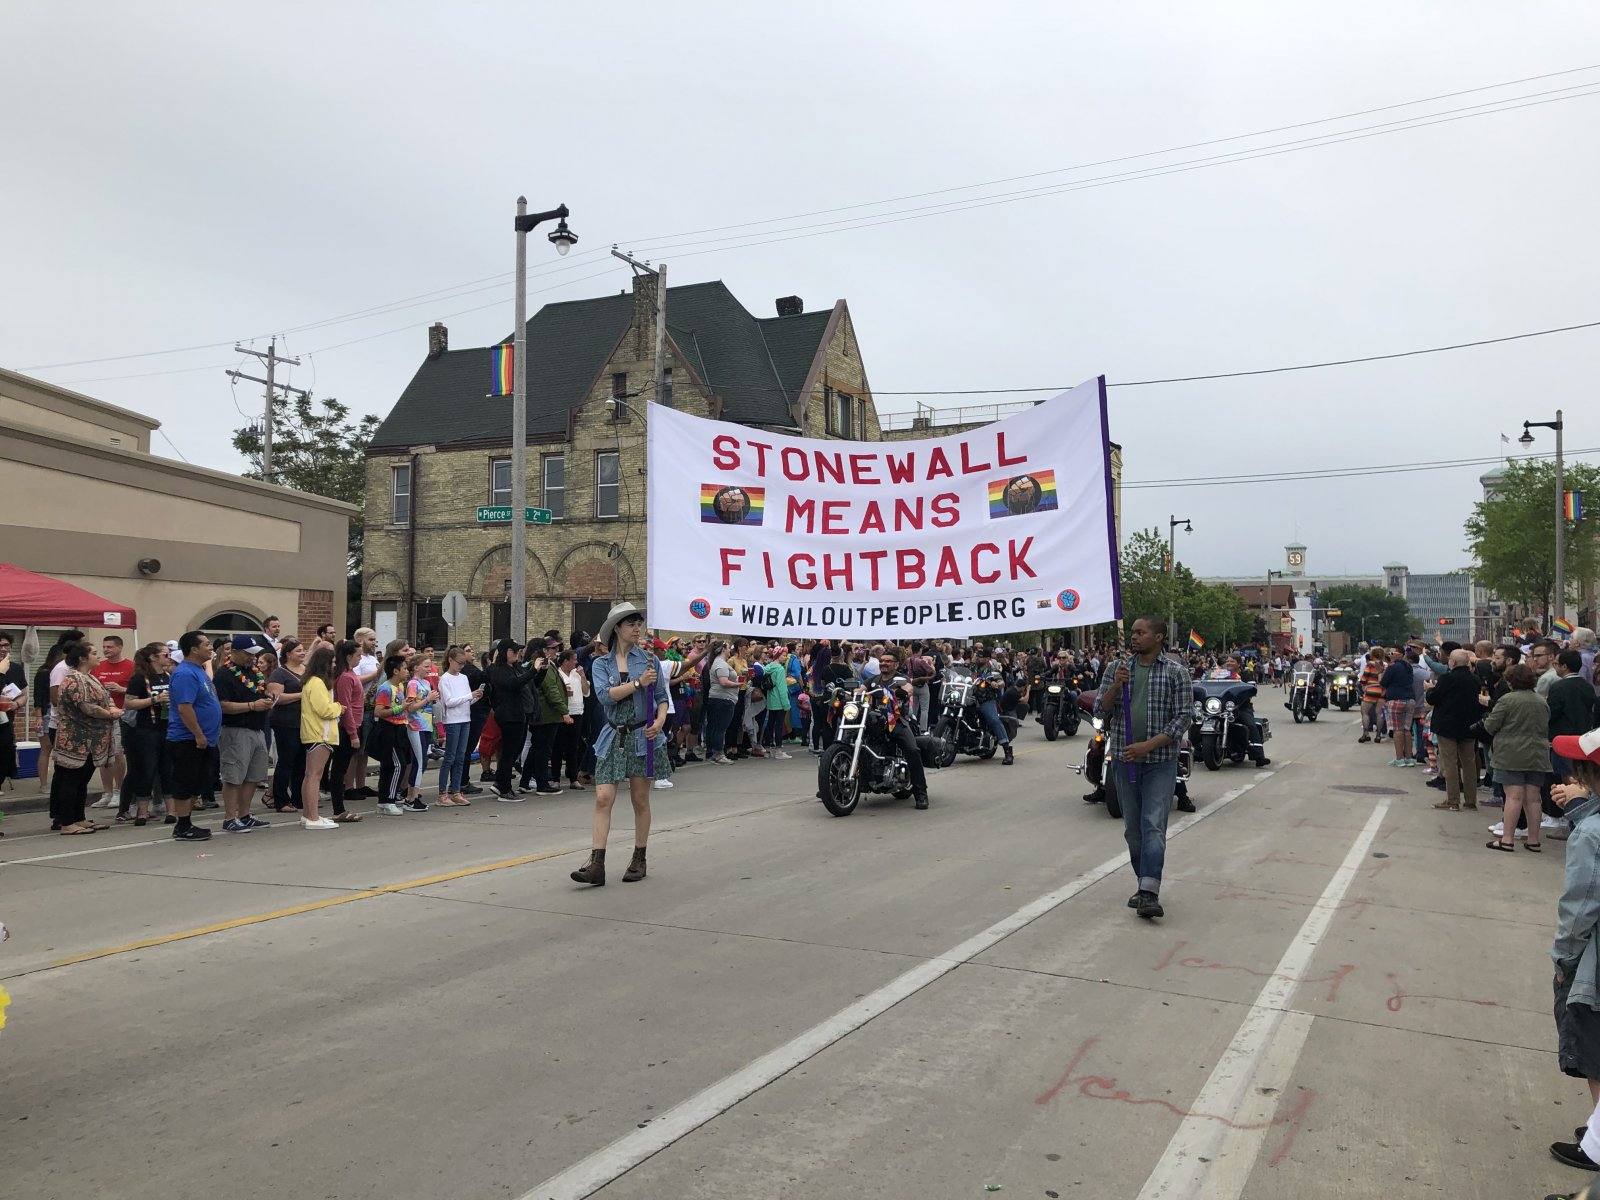 Stonewall Means Fightback